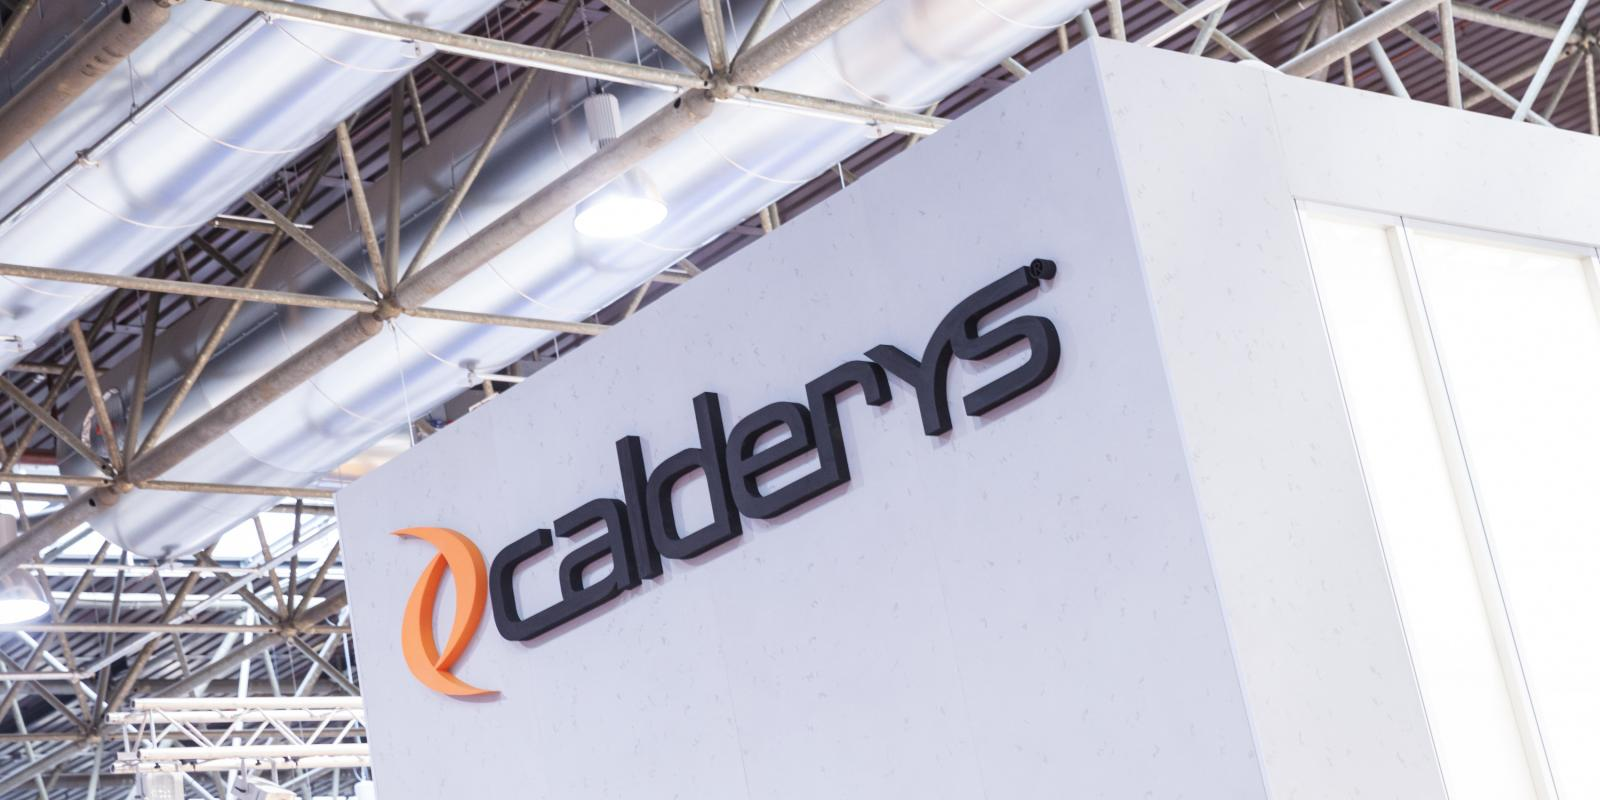 Calderys at Events and Conferences